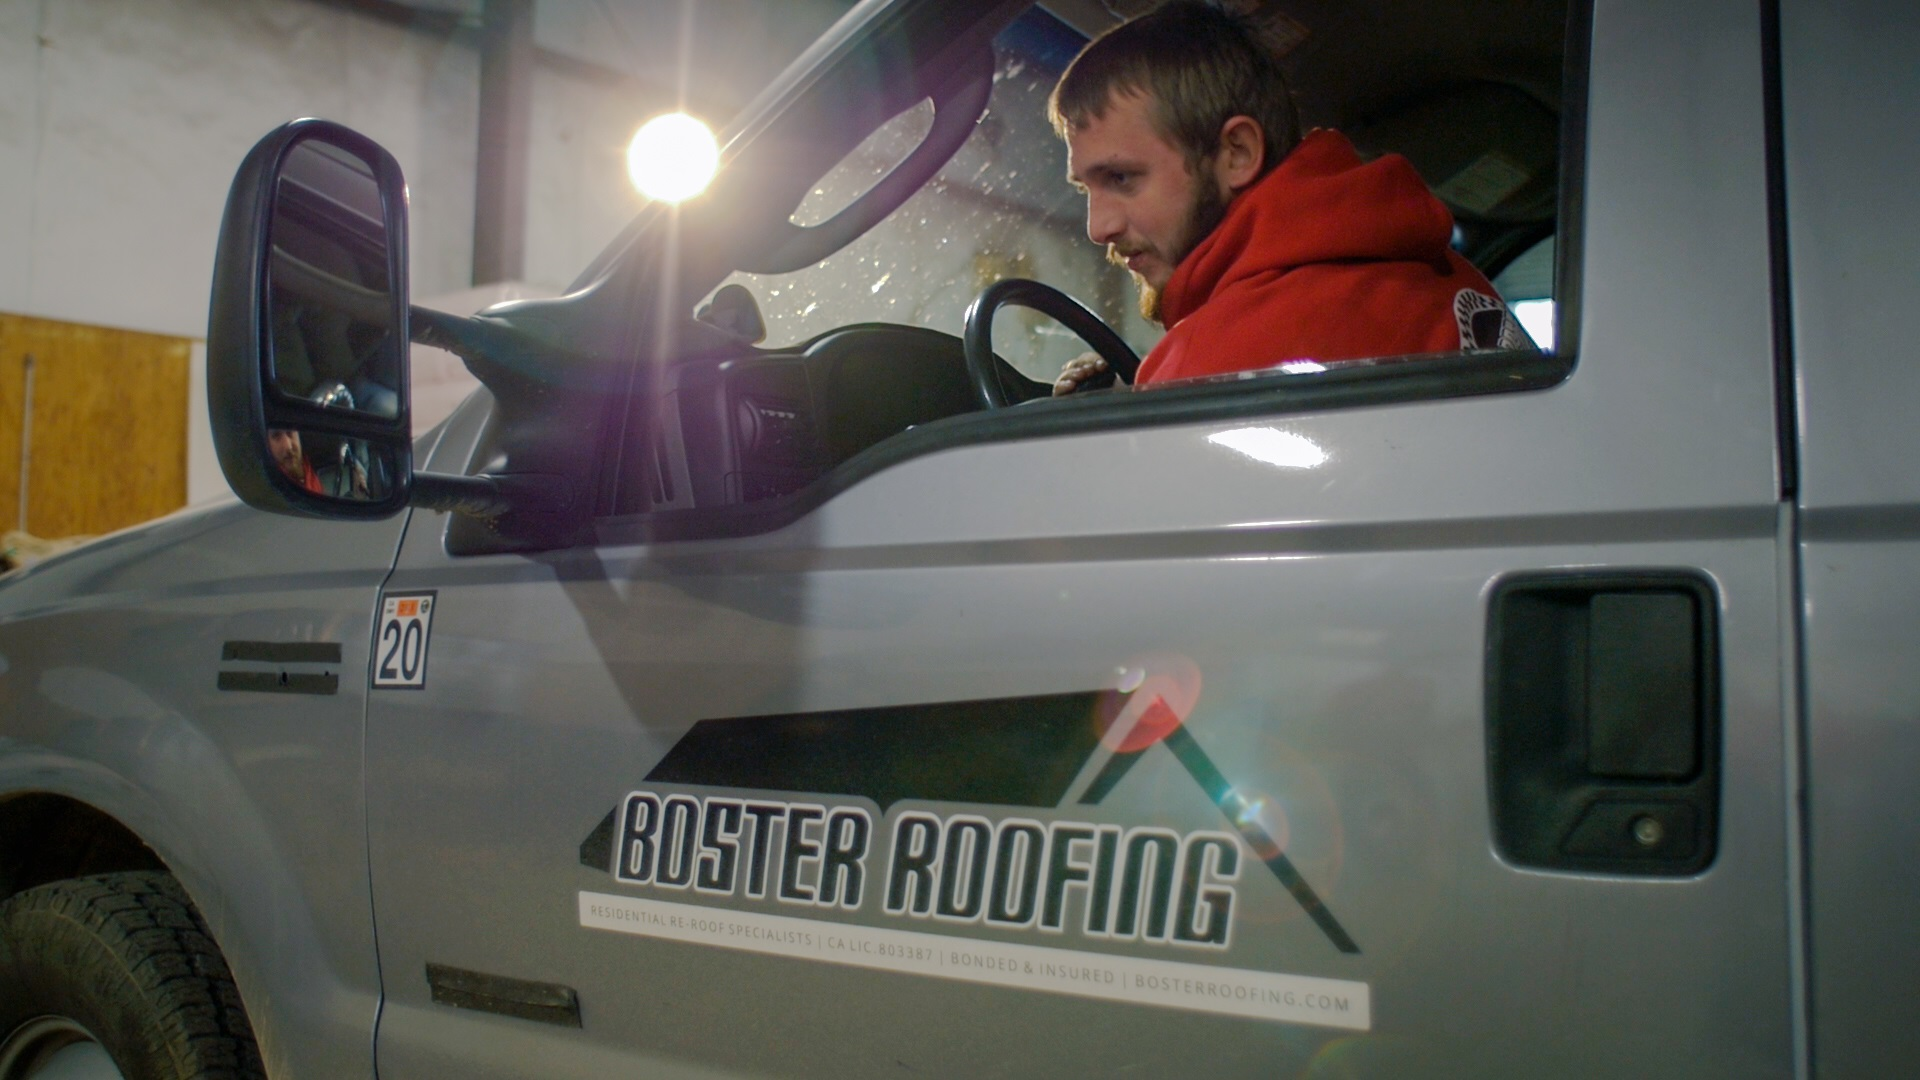 Boster Roofing image 15